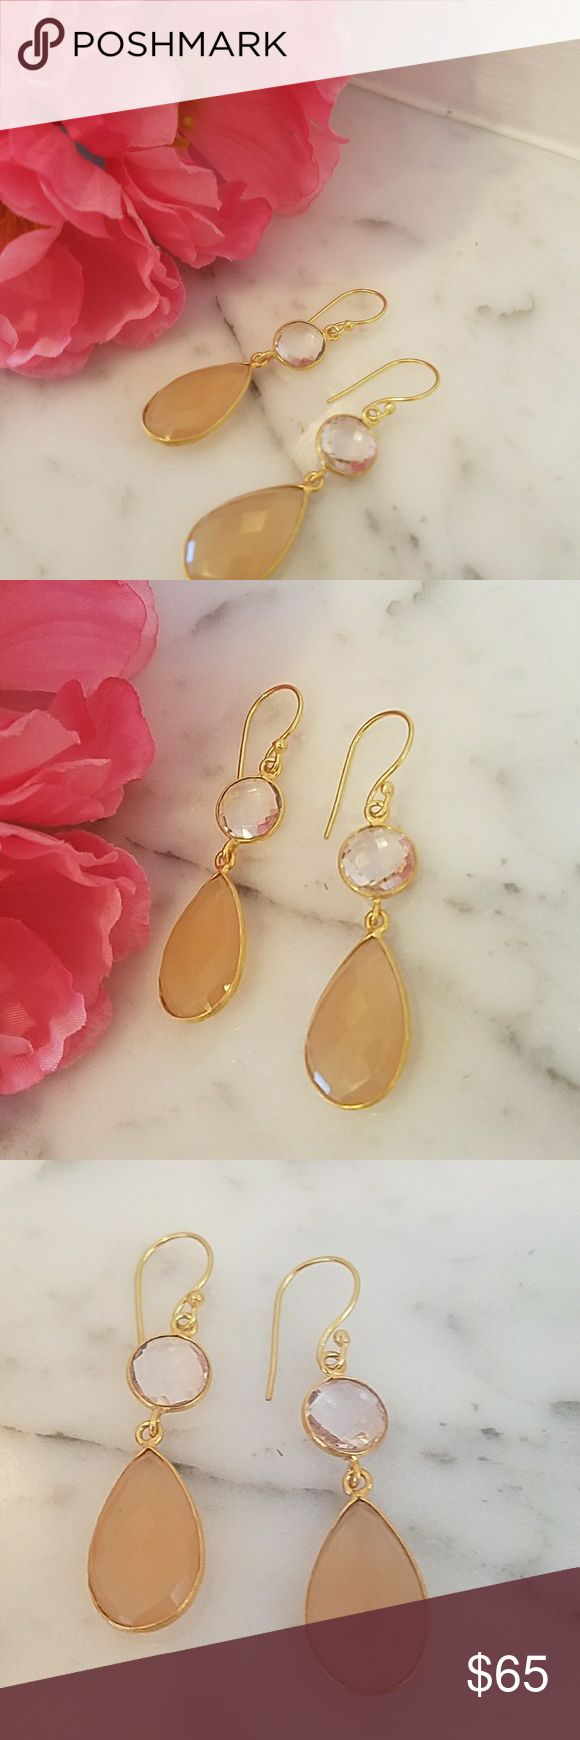 """Stunning Pear Drop Semi precious stone earrings Stunning Pear Drop Semi precious stone earrings. Gold-plated pierced semi-precious stone earrings. Noticed that the circle stone has a hue of purple and the pear shape Stone has a golden hue to it. The earrings drop slightly over 2"""" long. These are new without tags but come in original bag. Jewelry Earrings"""